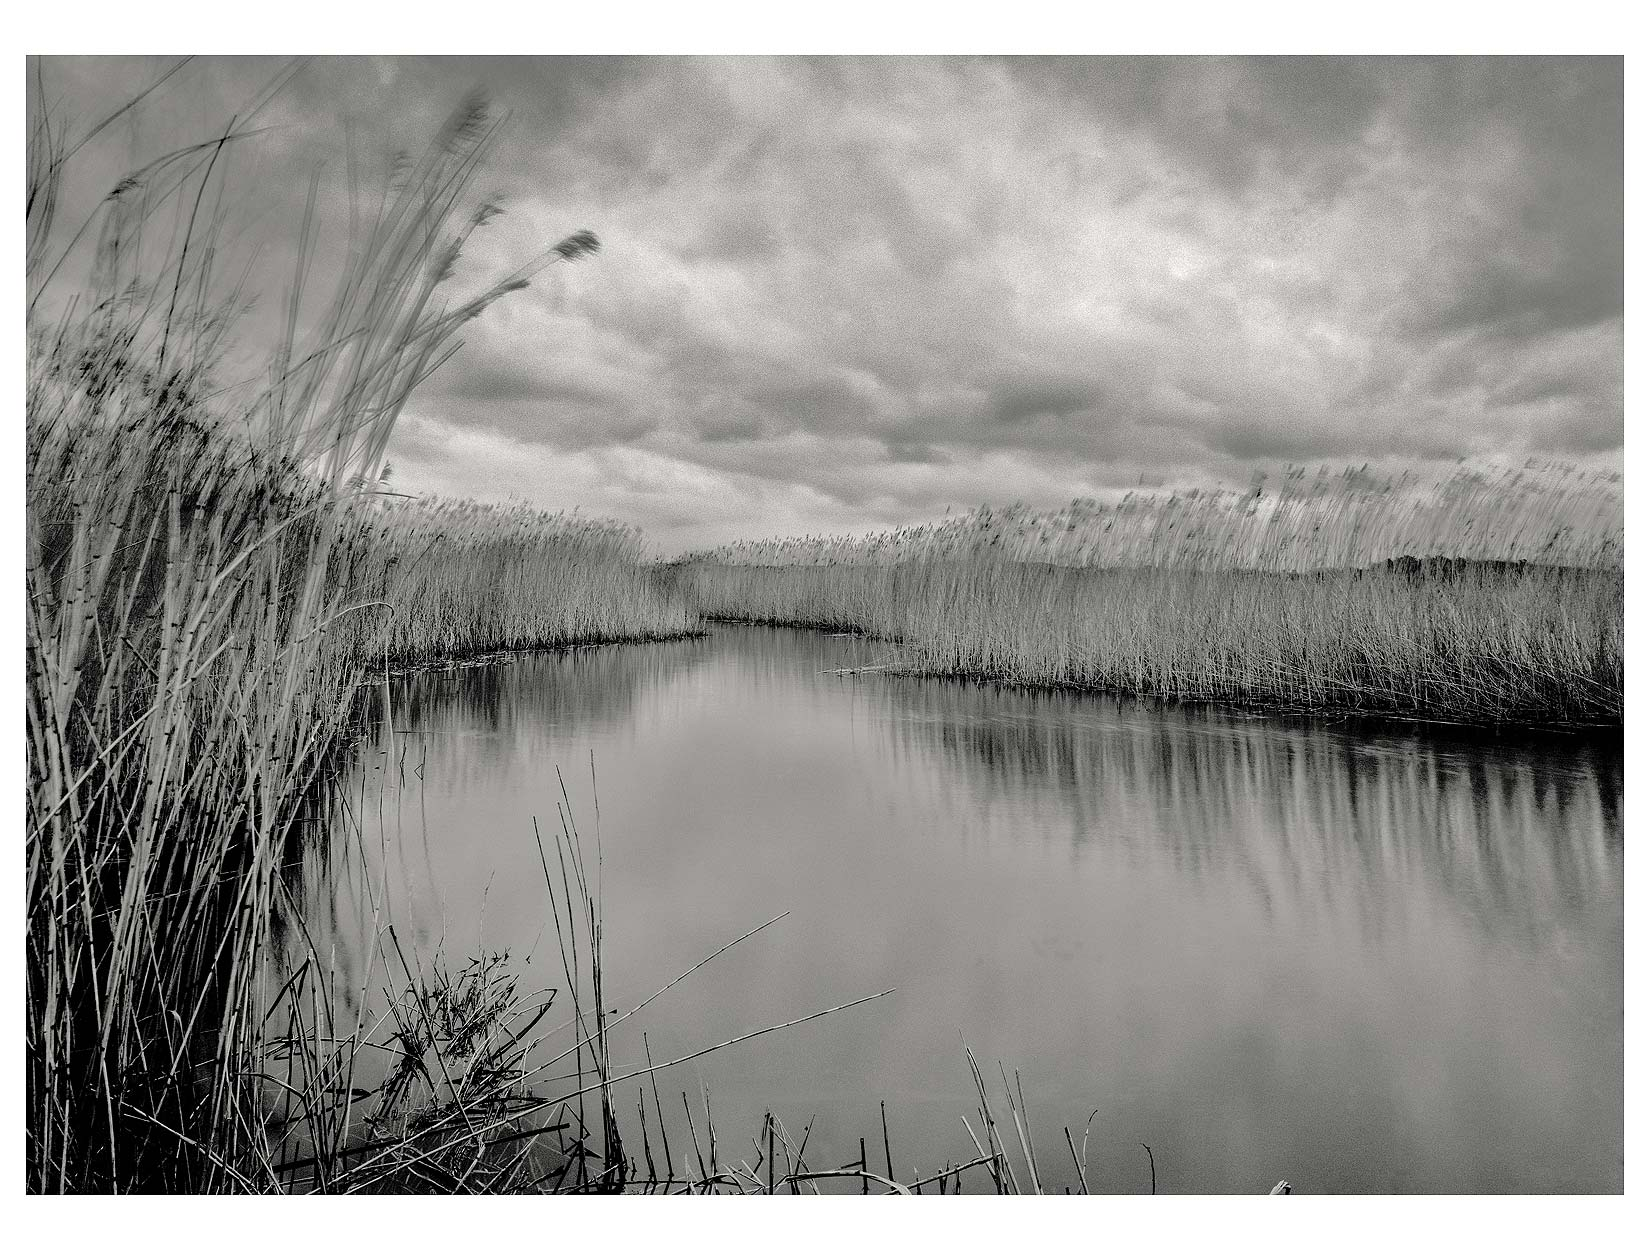 reeds-on-a-quiet-river